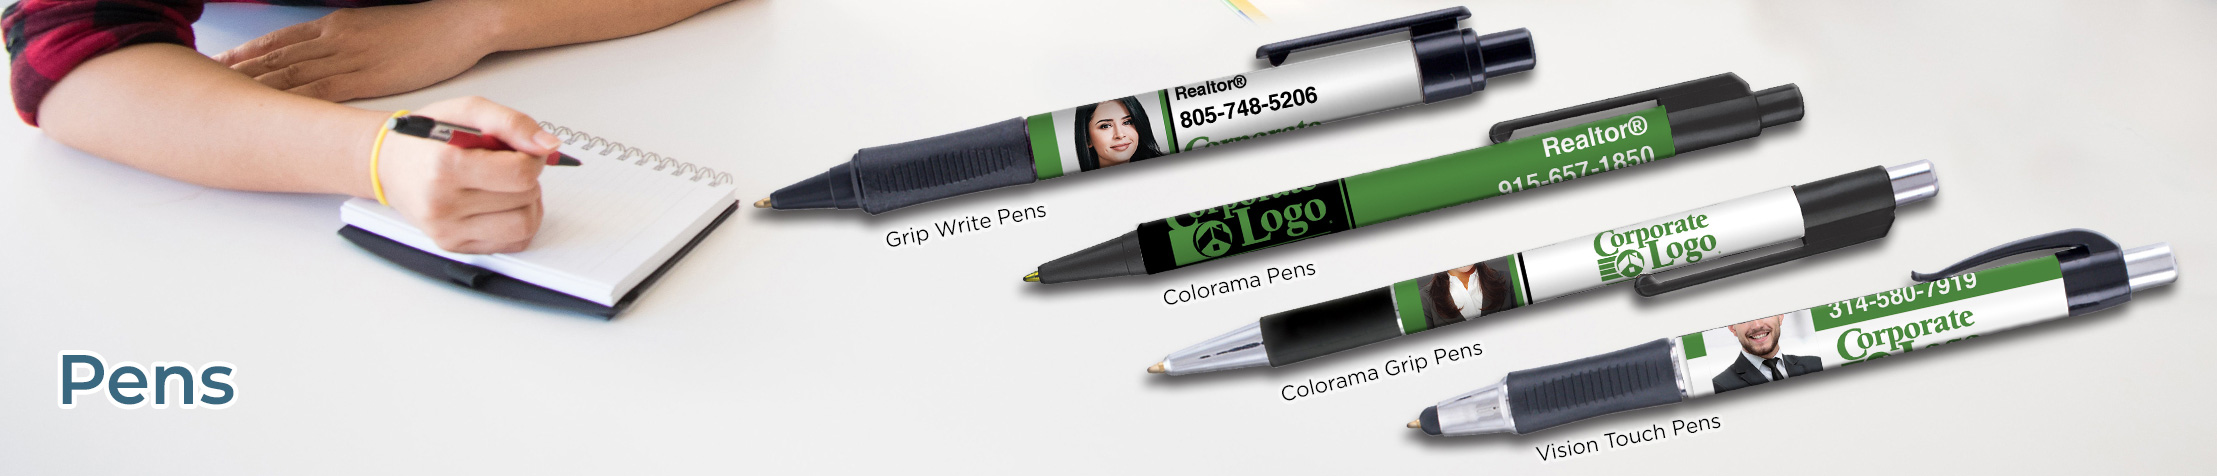 Better Homes and Gardens Real Estate Personalized Pens - BHGRE promotional products: Grip Write Pens, Colorama Pens, Vision Touch Pens, and Colorama Grip Pens | BestPrintBuy.com